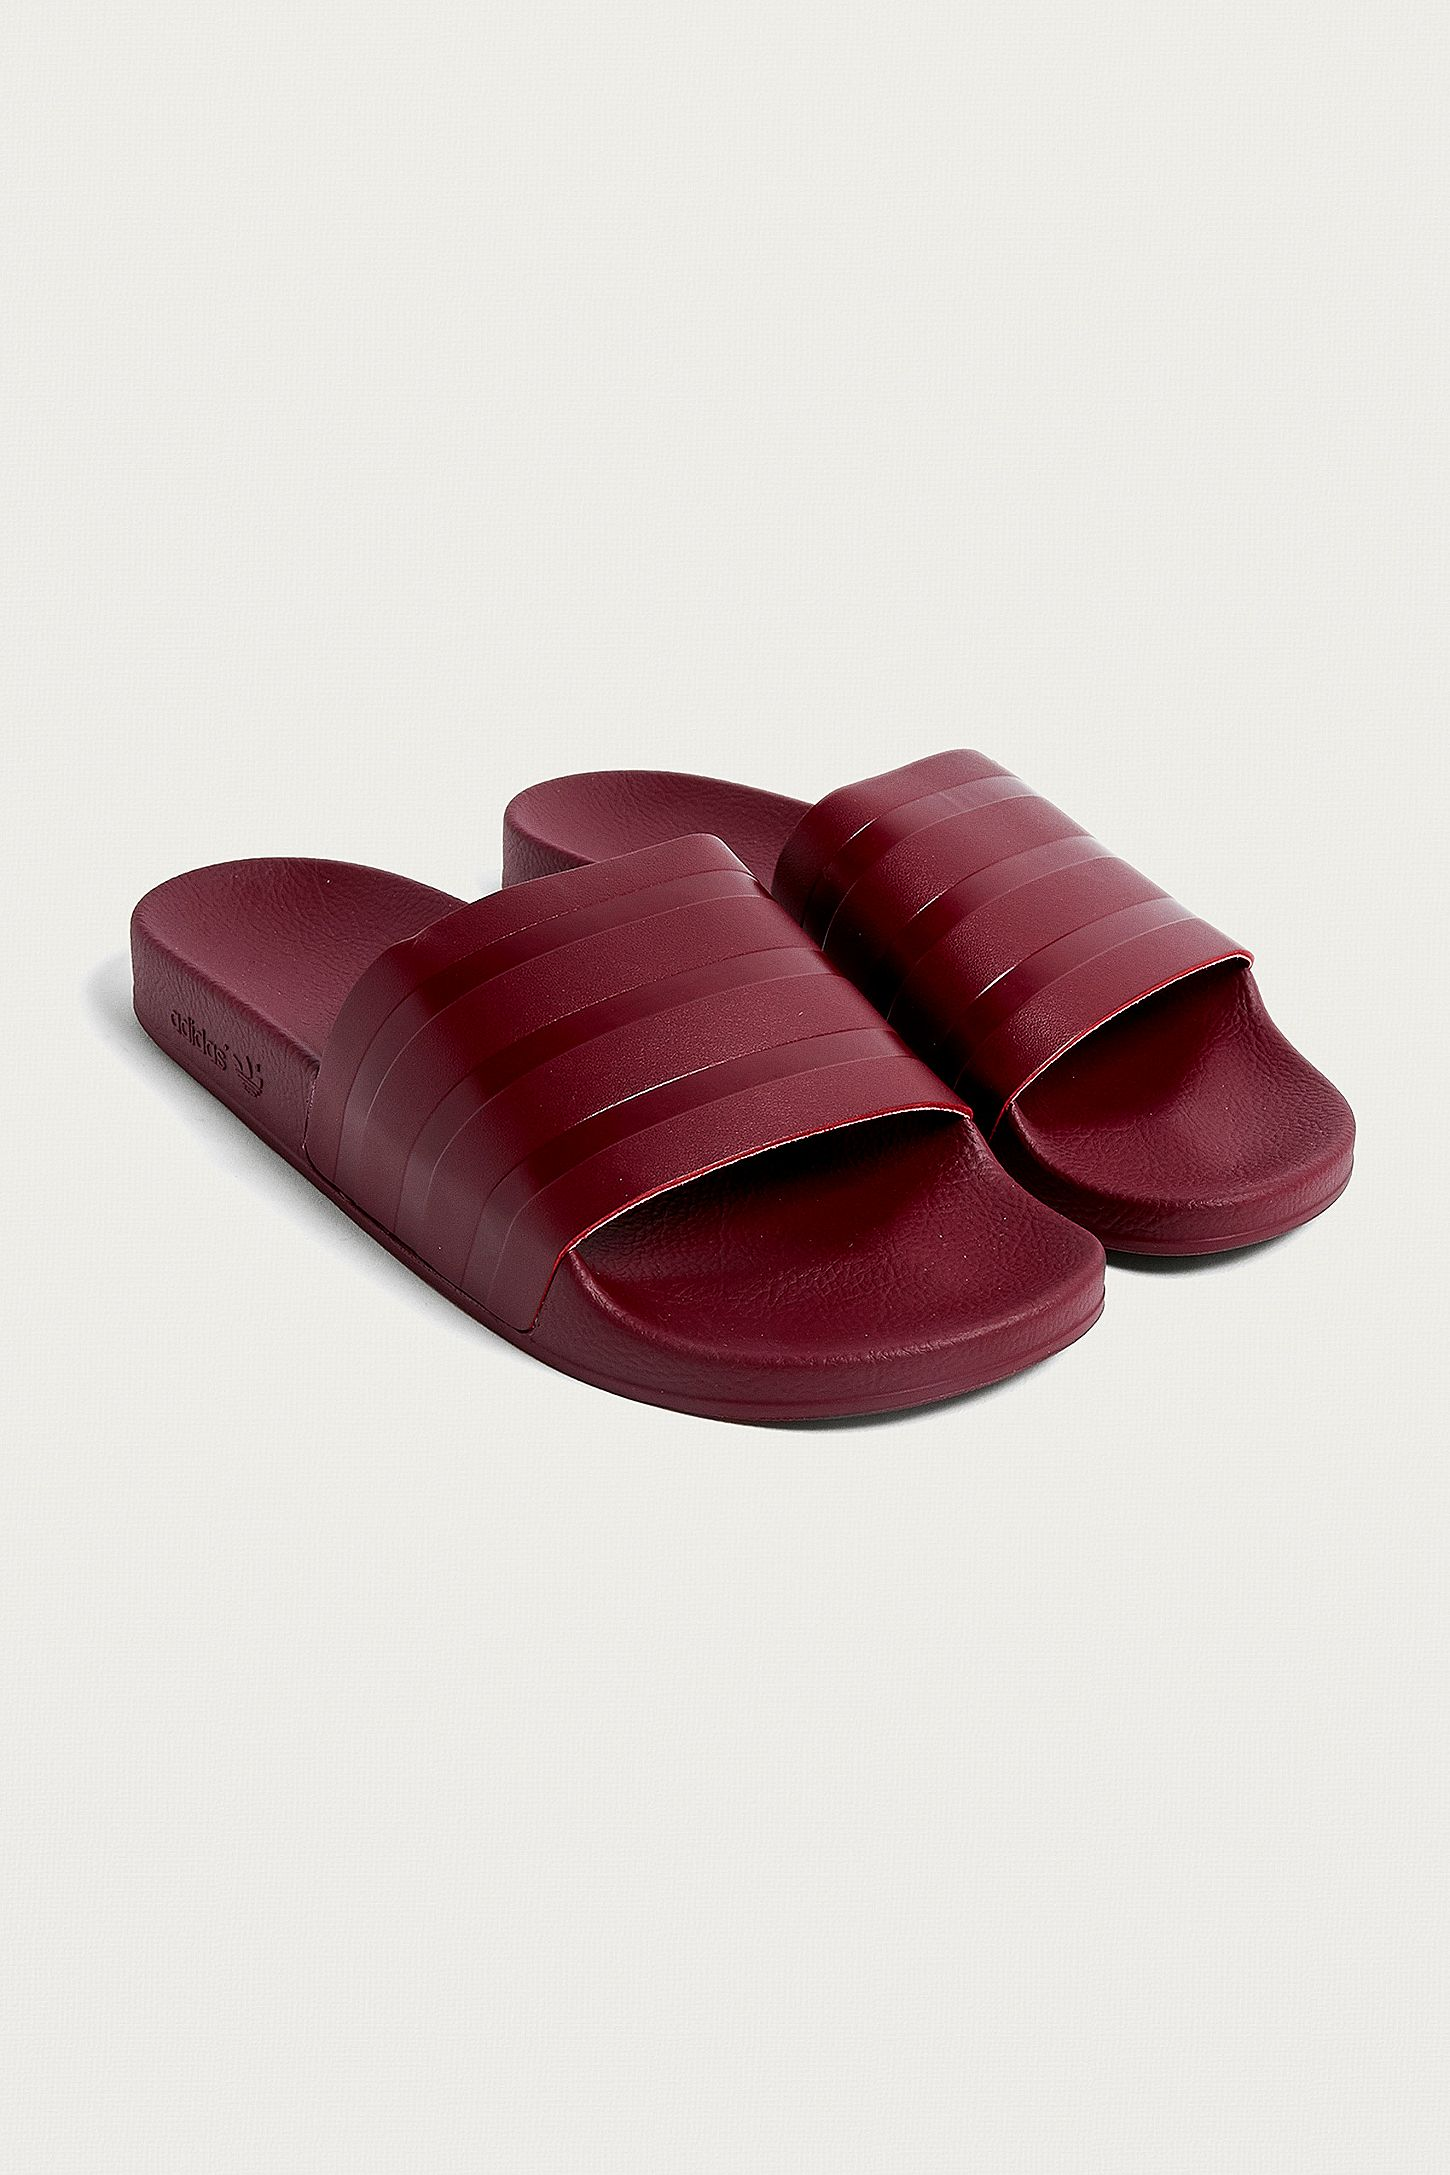 ea51e5e86060 adidas Adilette Burgundy Pool Sliders. Click on image to zoom. Hover to  zoom. Double Tap to Zoom